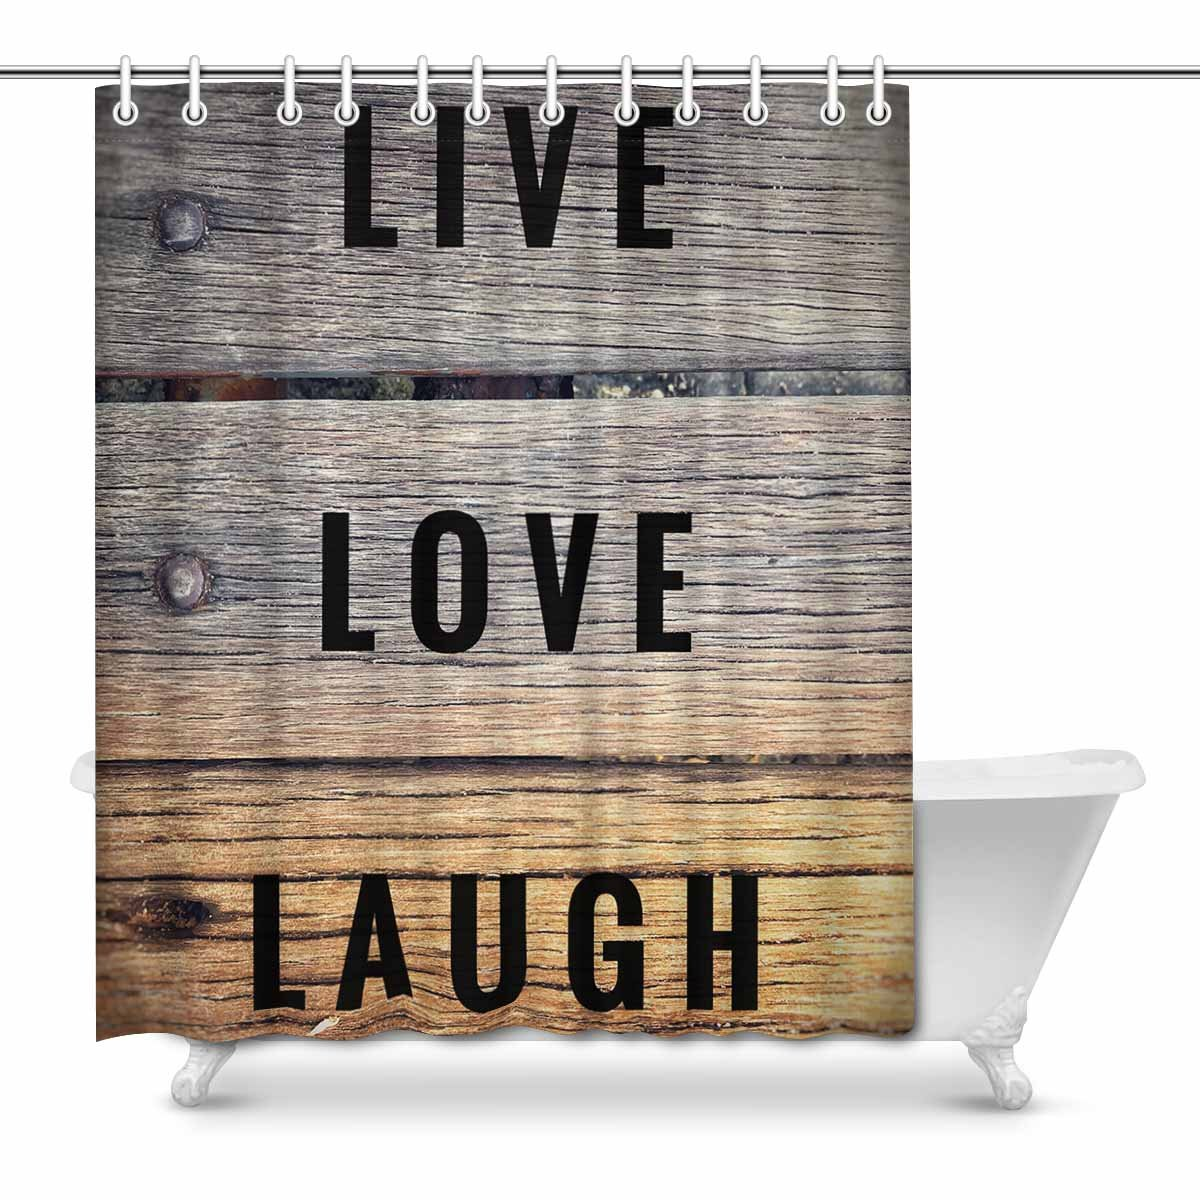 mkhert motivational and inspirational quotes live love laugh house decor shower curtain for bathroom decorative bathroom shower curtain set 66x72 inch